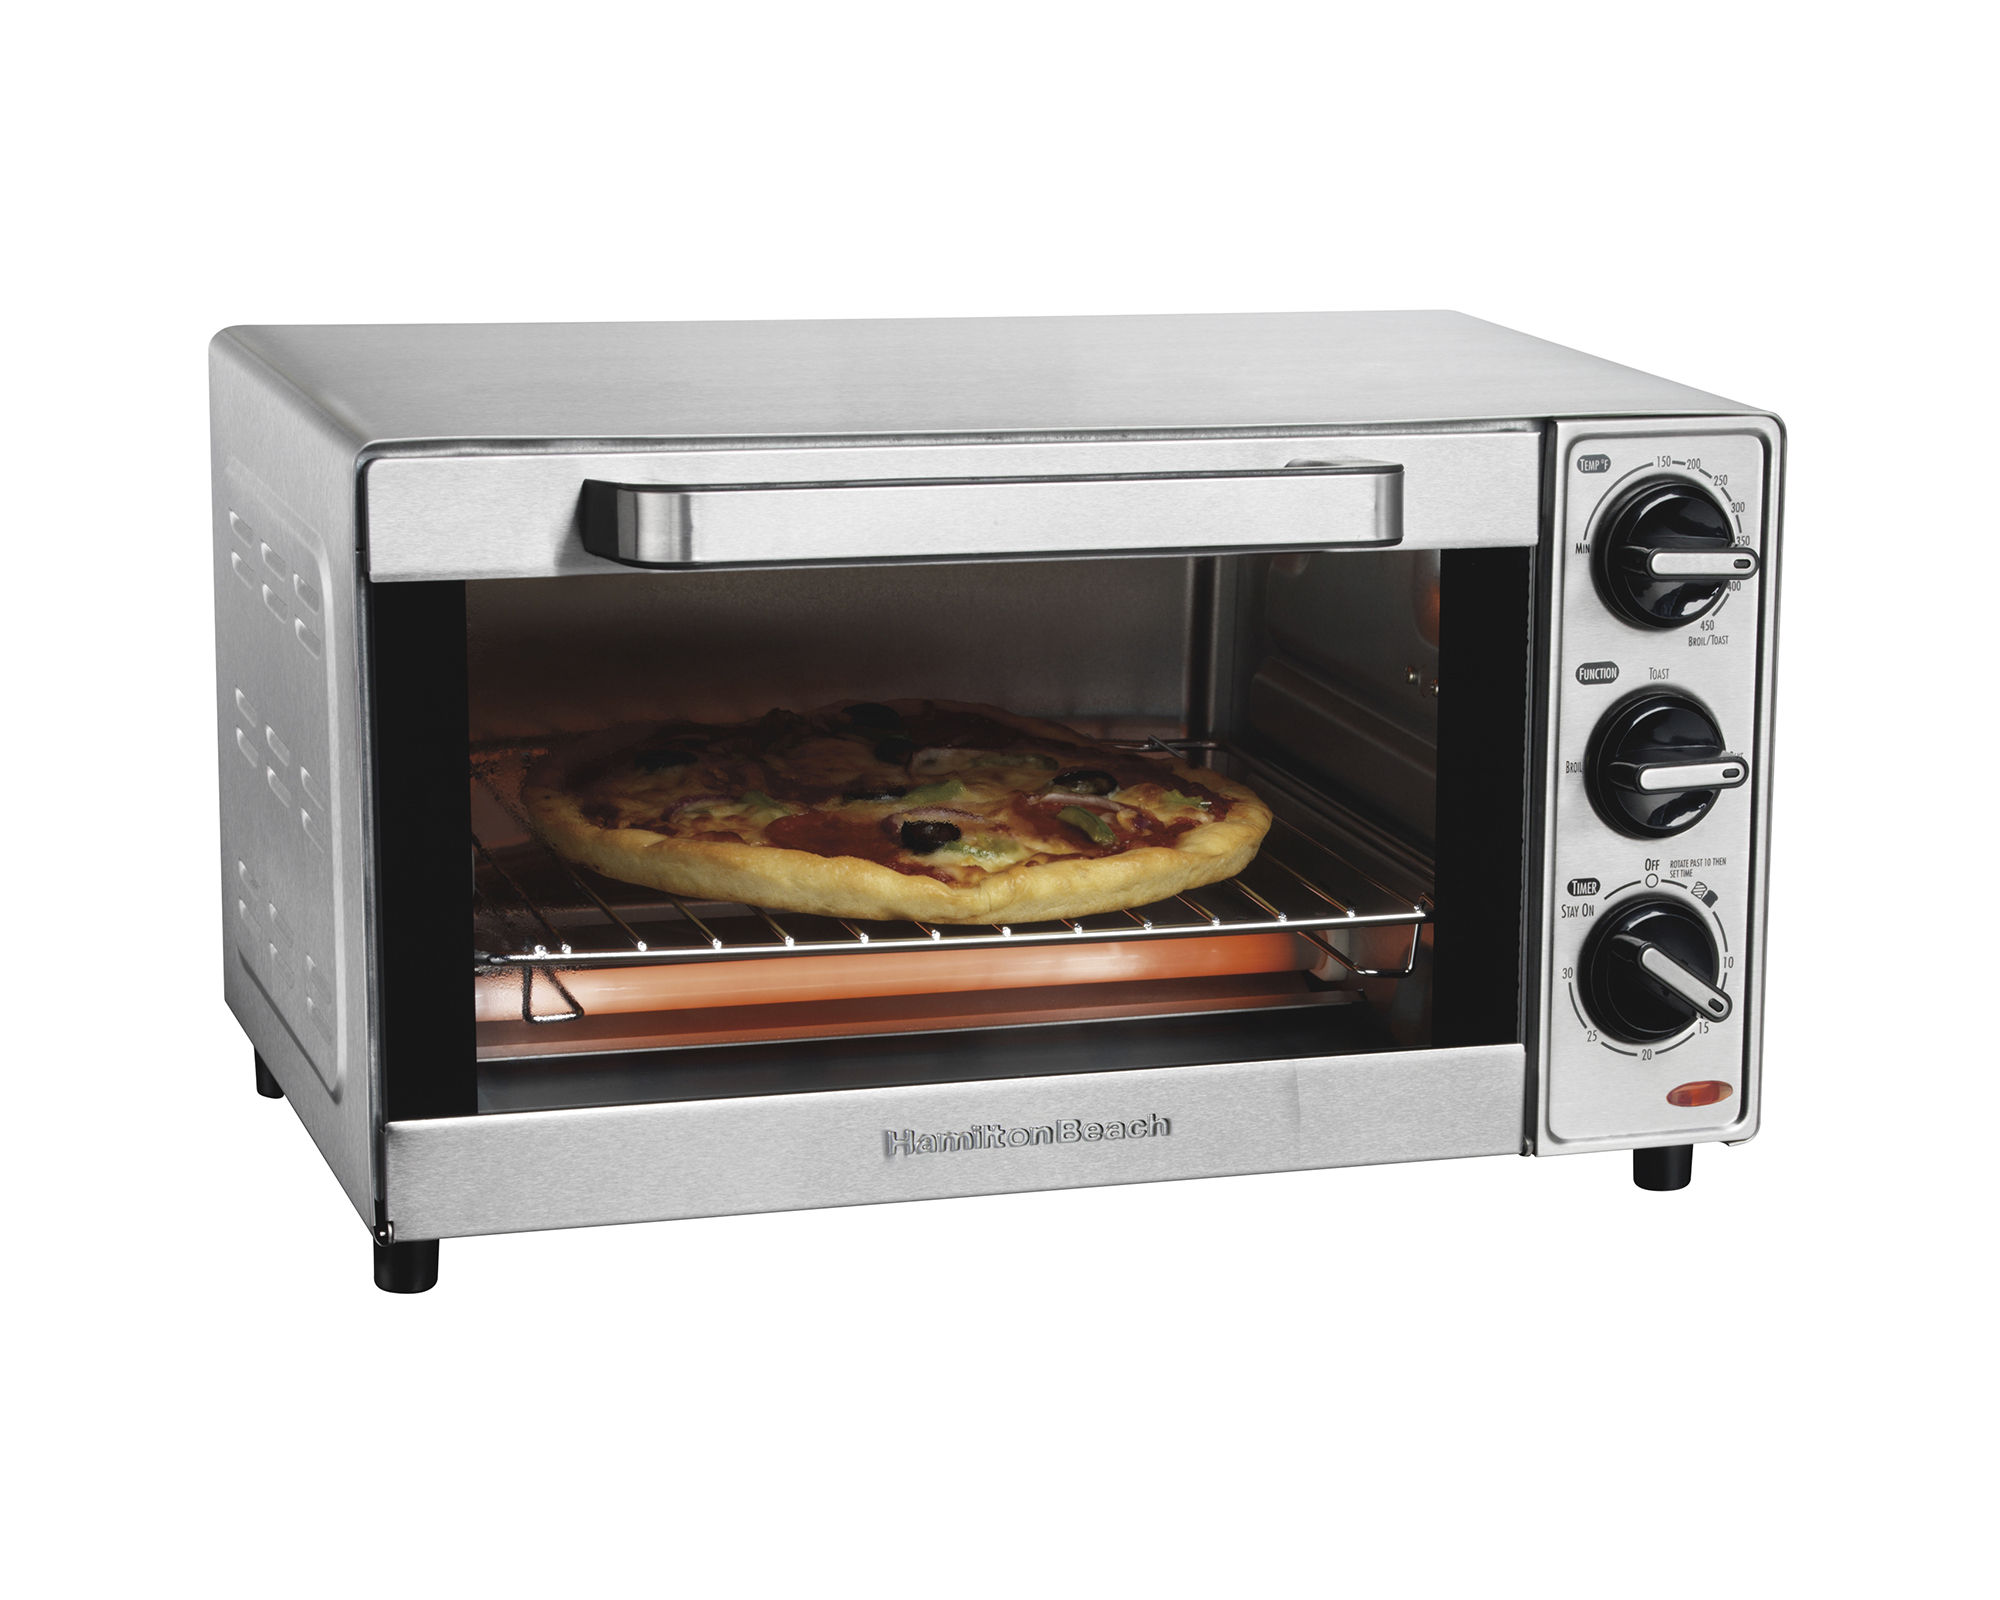 Hatco Stainless Toaster Oven Tk 100 Atlanta Fixture For